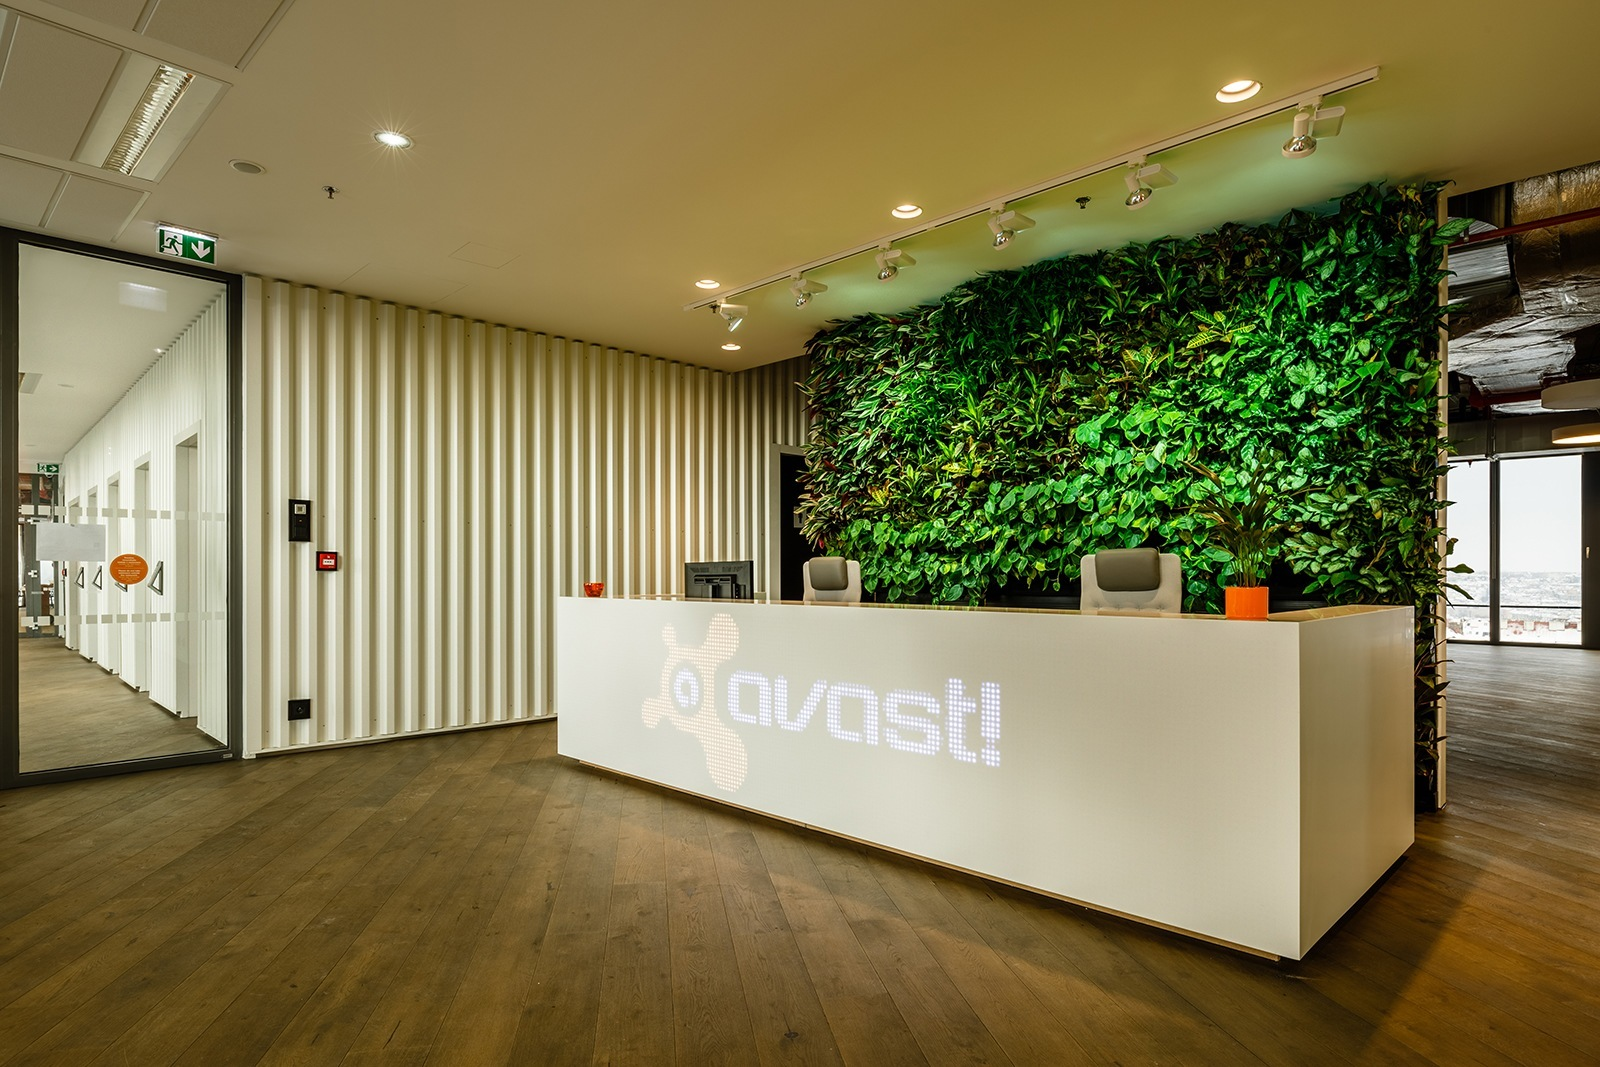 ����� ���� Avast ������ ���� avast-prague-hq-2.jp